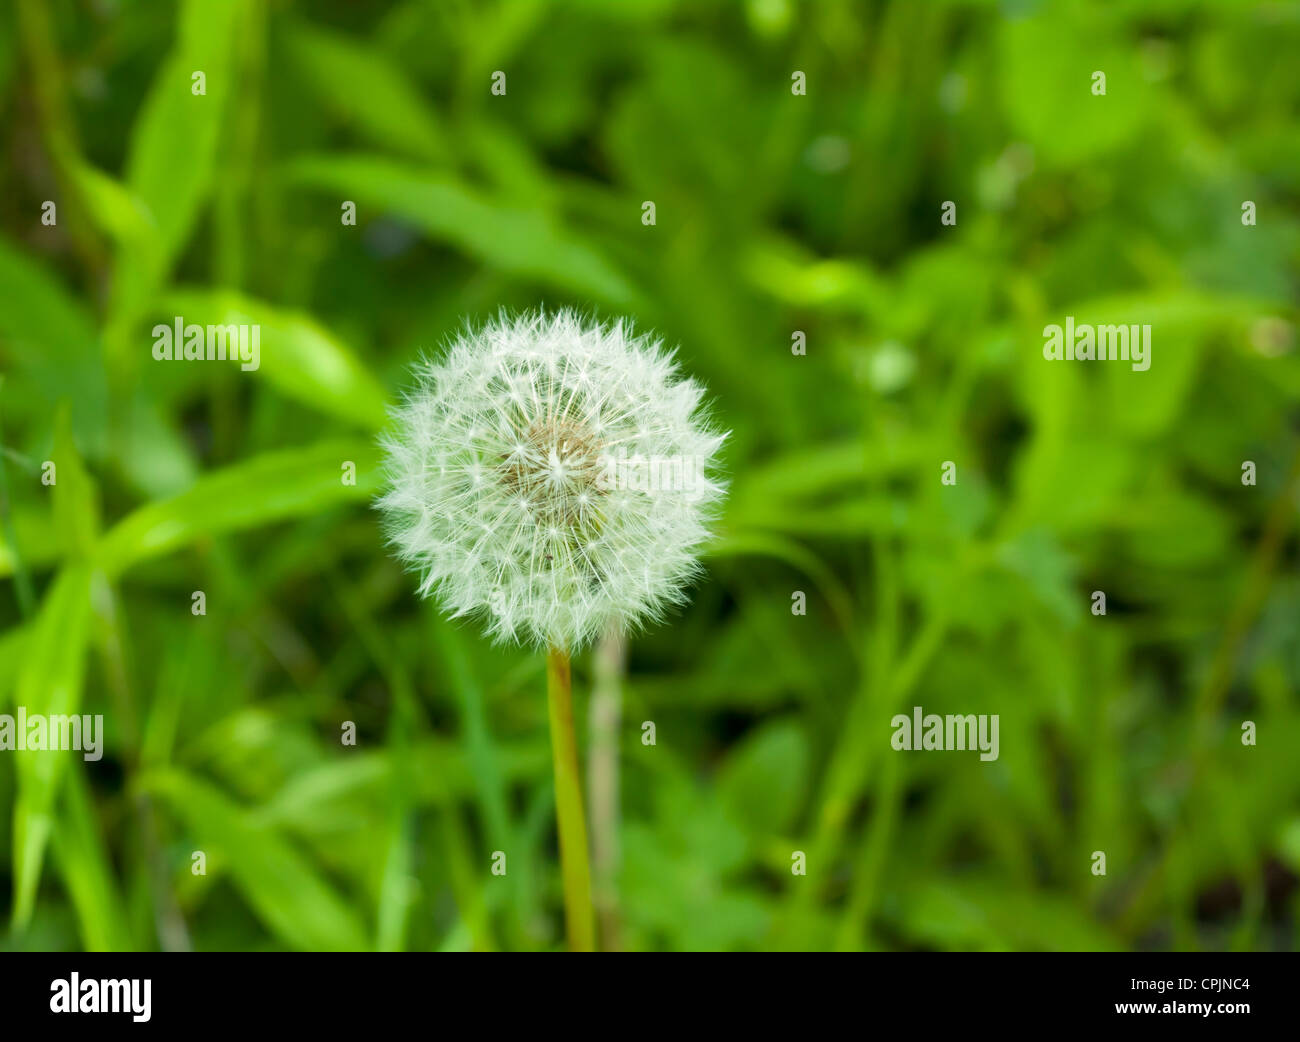 Dandelion flower head,Taraxacum officinale - Stock Image